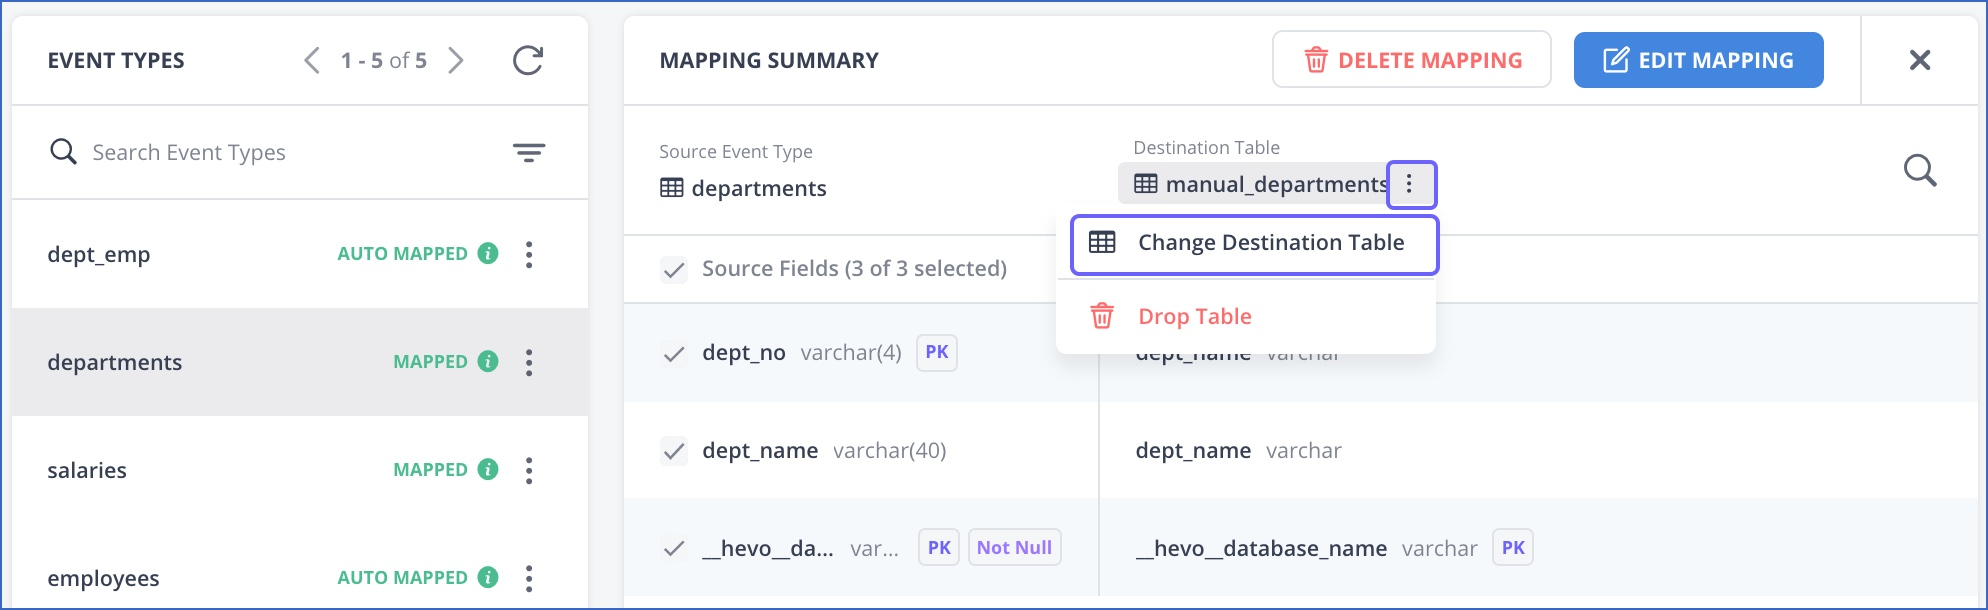 Change Destination table from mapping summary page